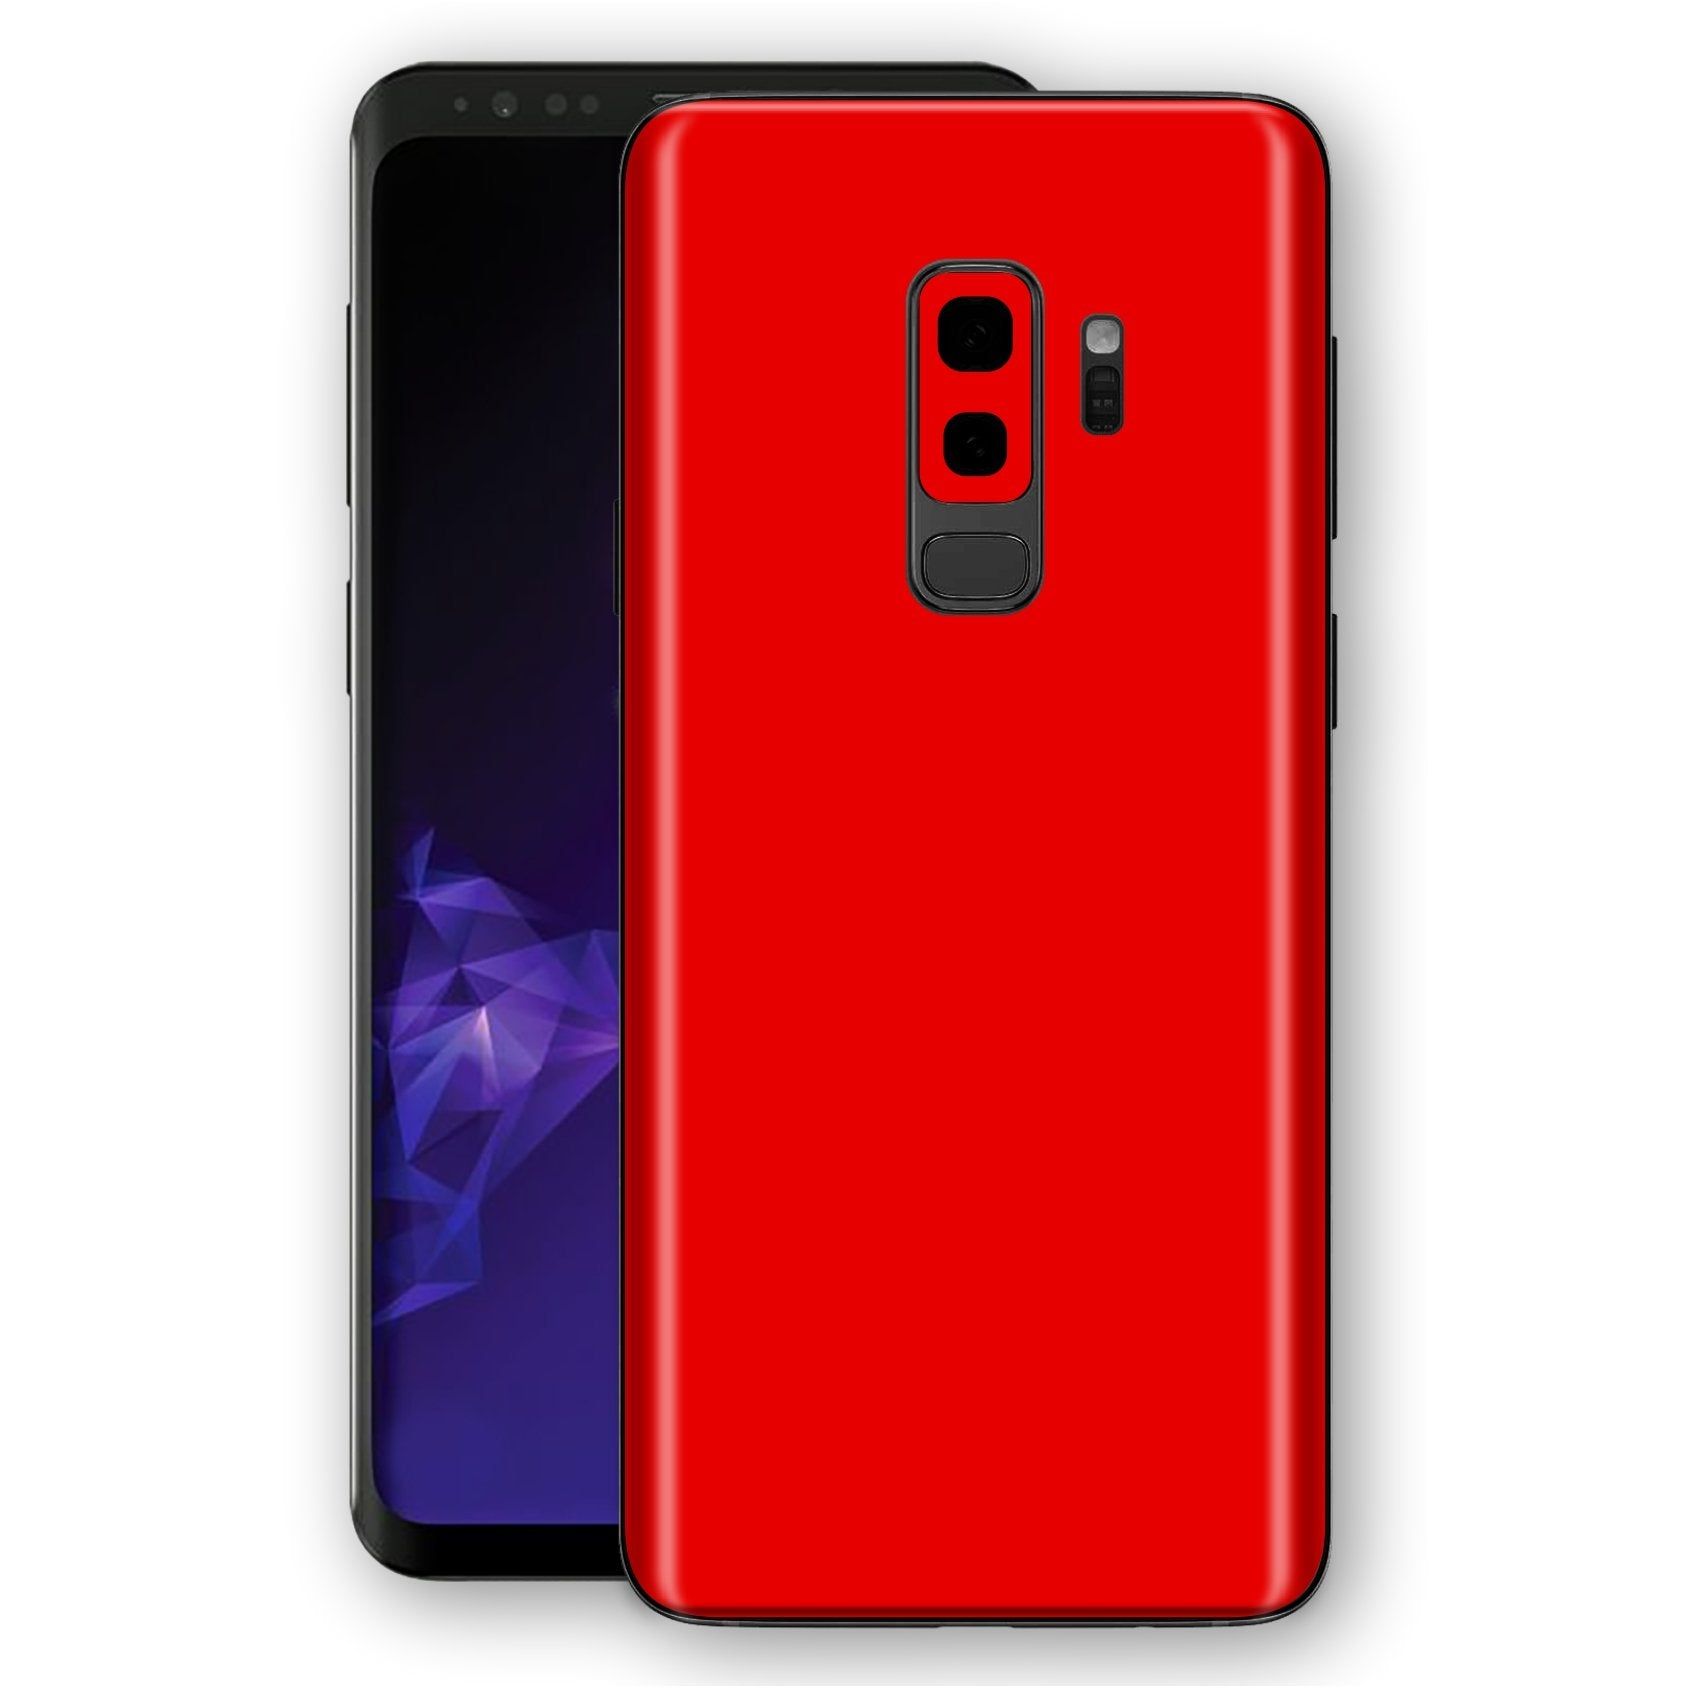 Samsung GALAXY S9+ PLUS Bright Red Glossy Gloss Finish Skin, Decal, Wrap, Protector, Cover by EasySkinz | EasySkinz.com